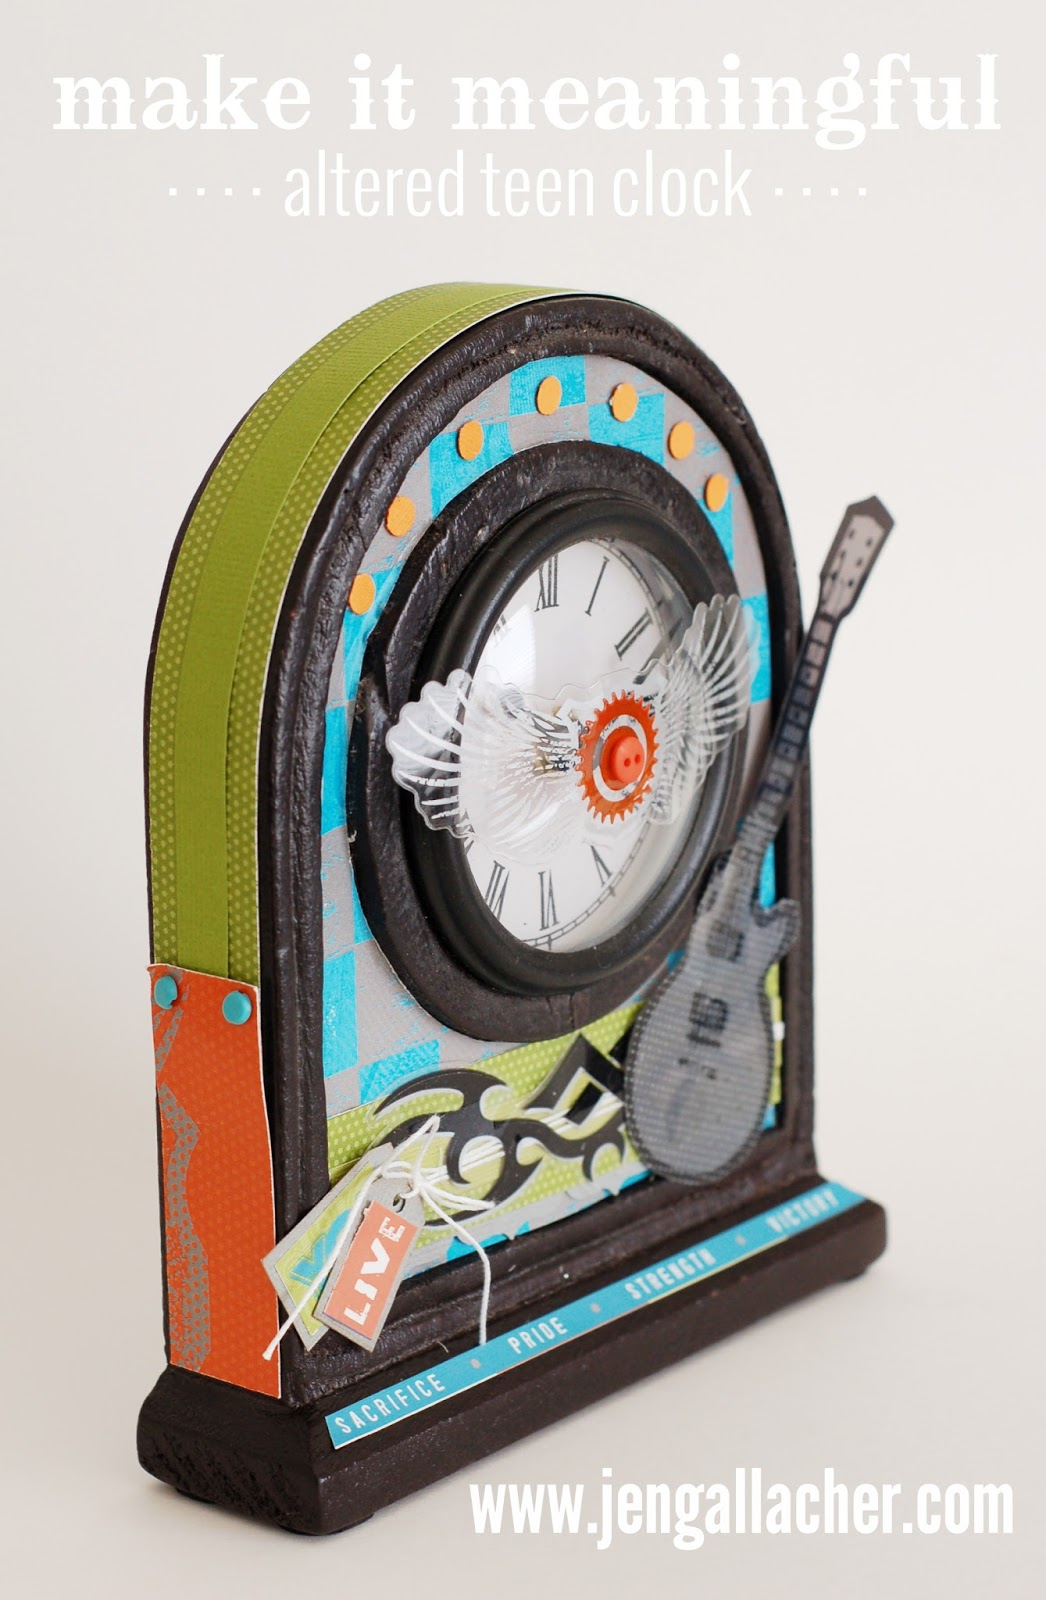 Make It Meaningful: Altered Teen Clock by Jen Gallacher at www.jengallacher.com